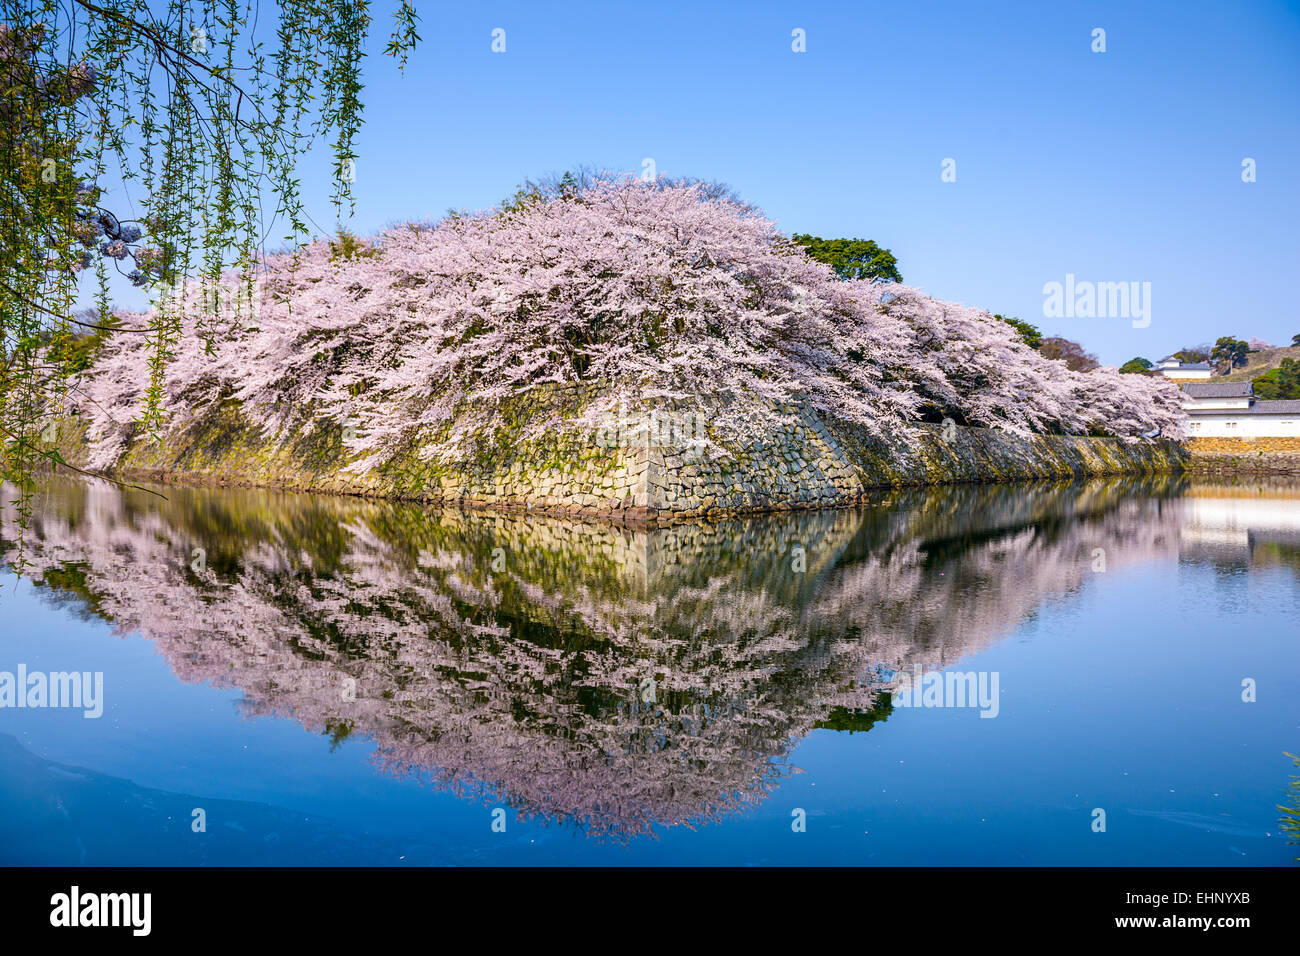 Hikone, Japan at the castle moat during spring season. - Stock Image